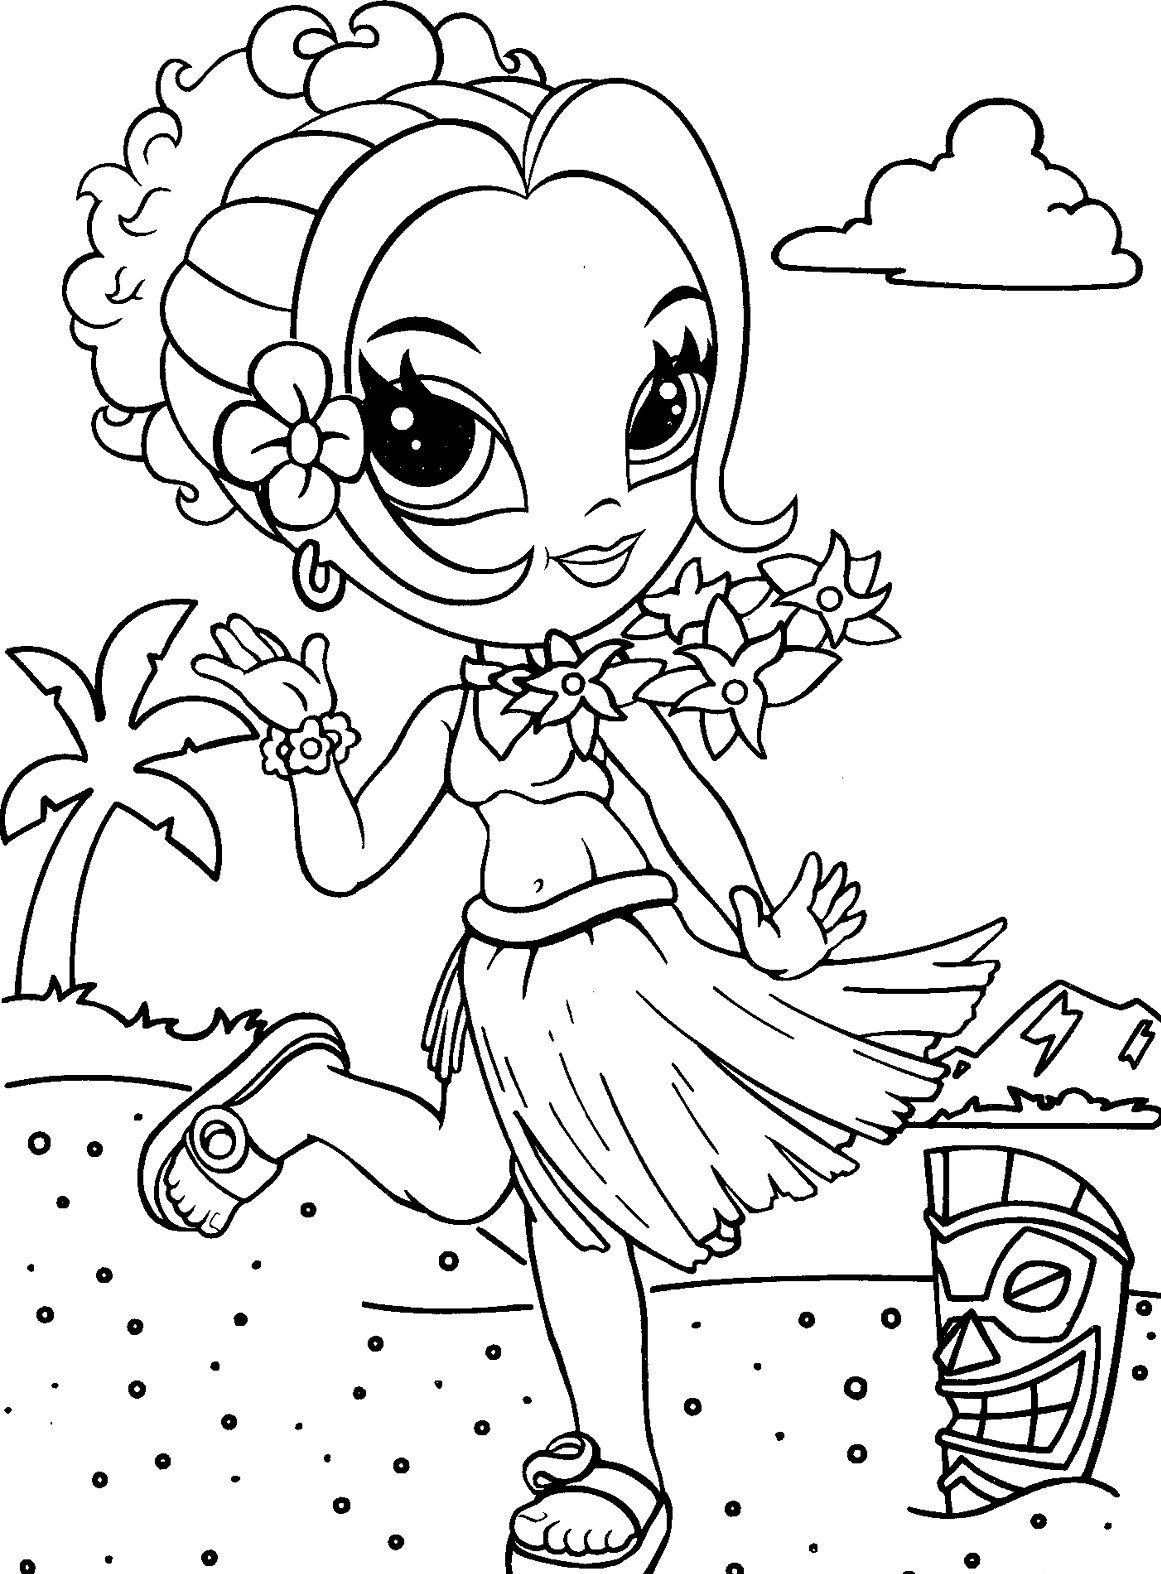 lisa frank coloring pages 2. Lisa frank coloring pages to download and print for free